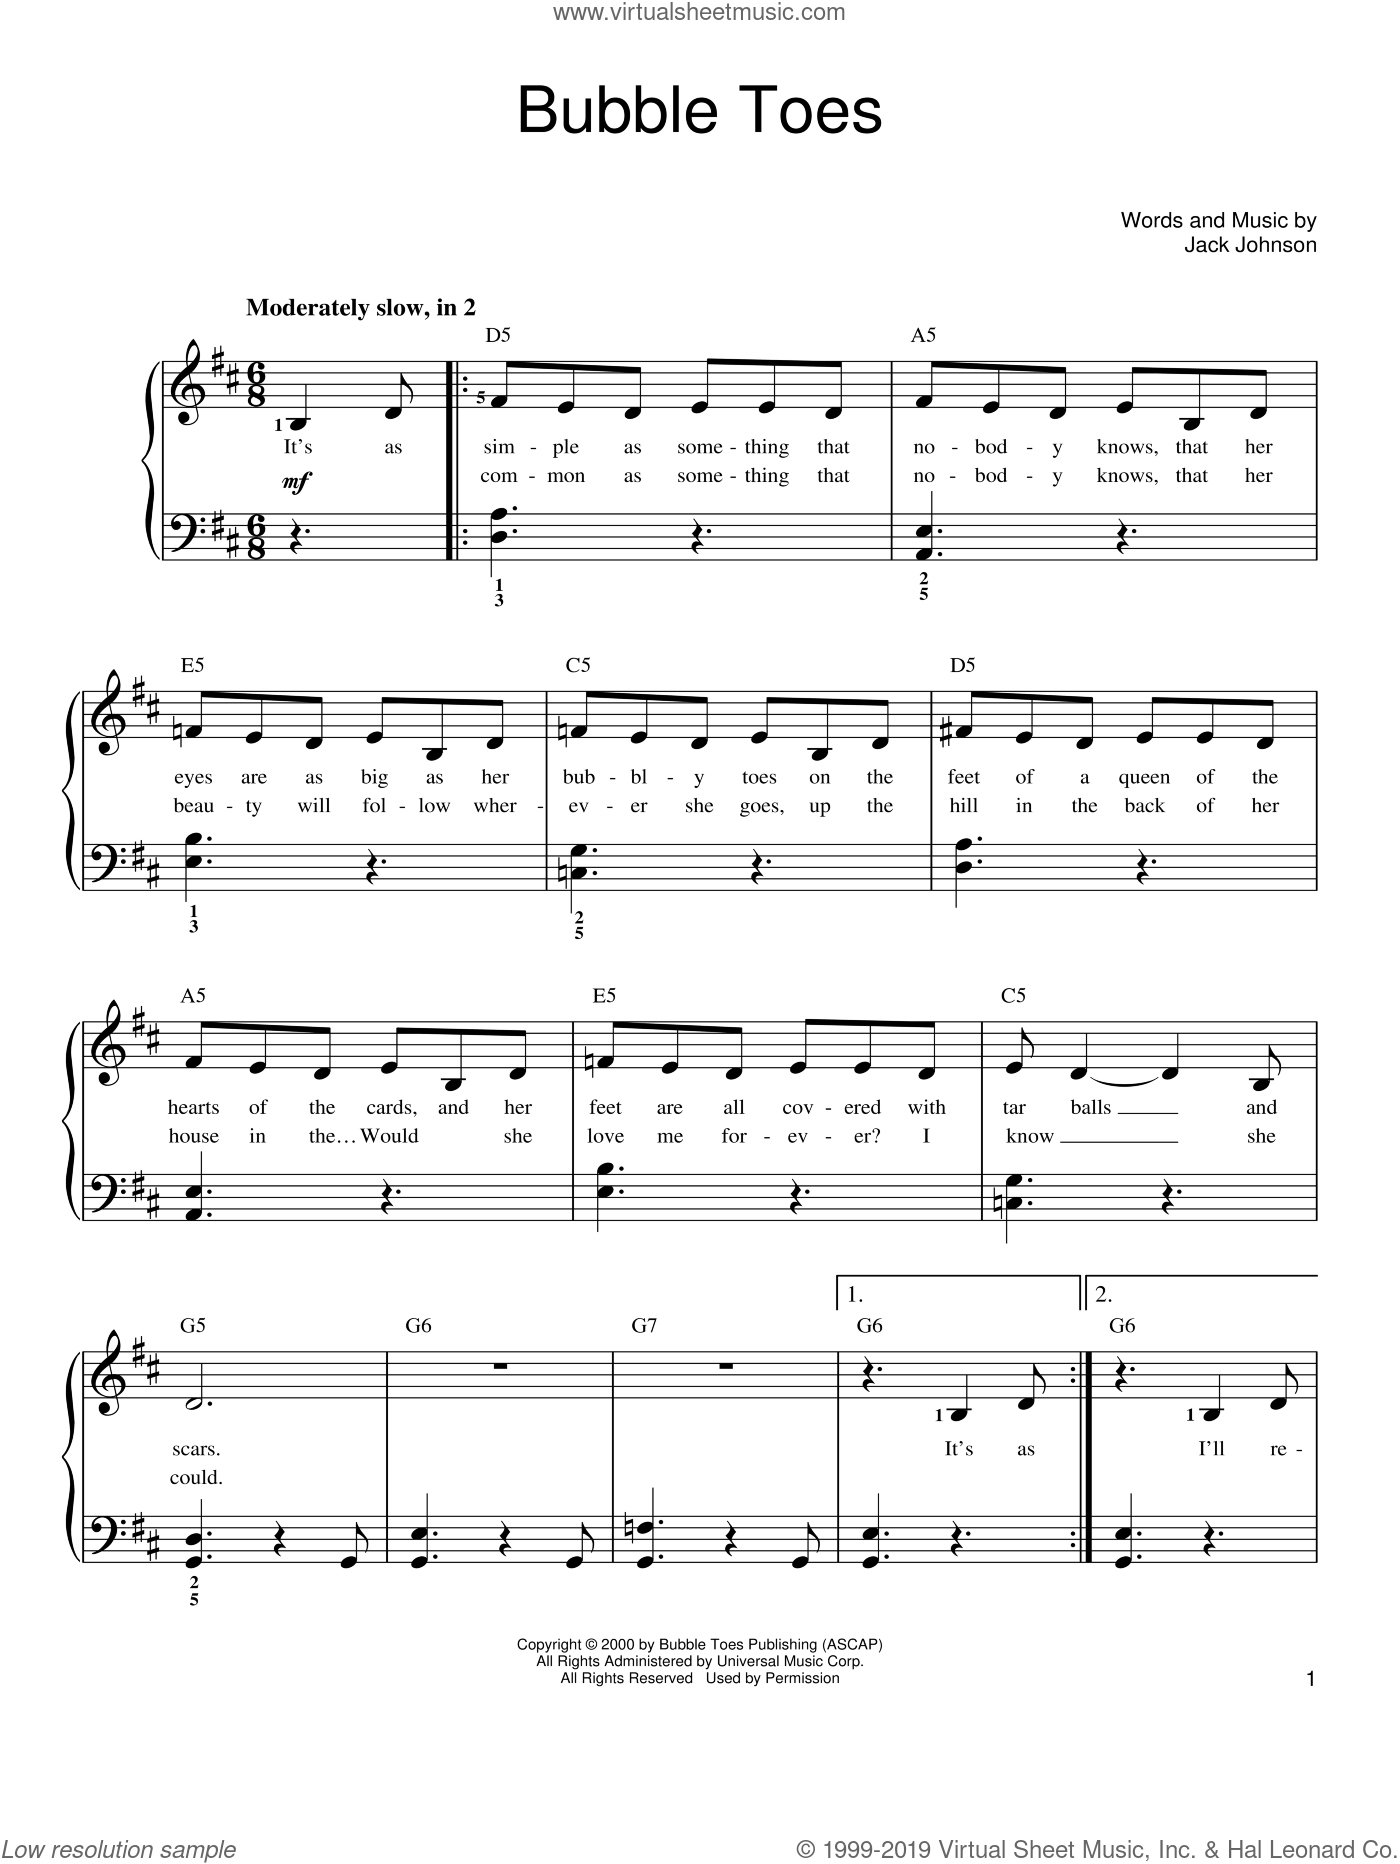 Bubble Toes sheet music for piano solo by Jack Johnson, easy skill level